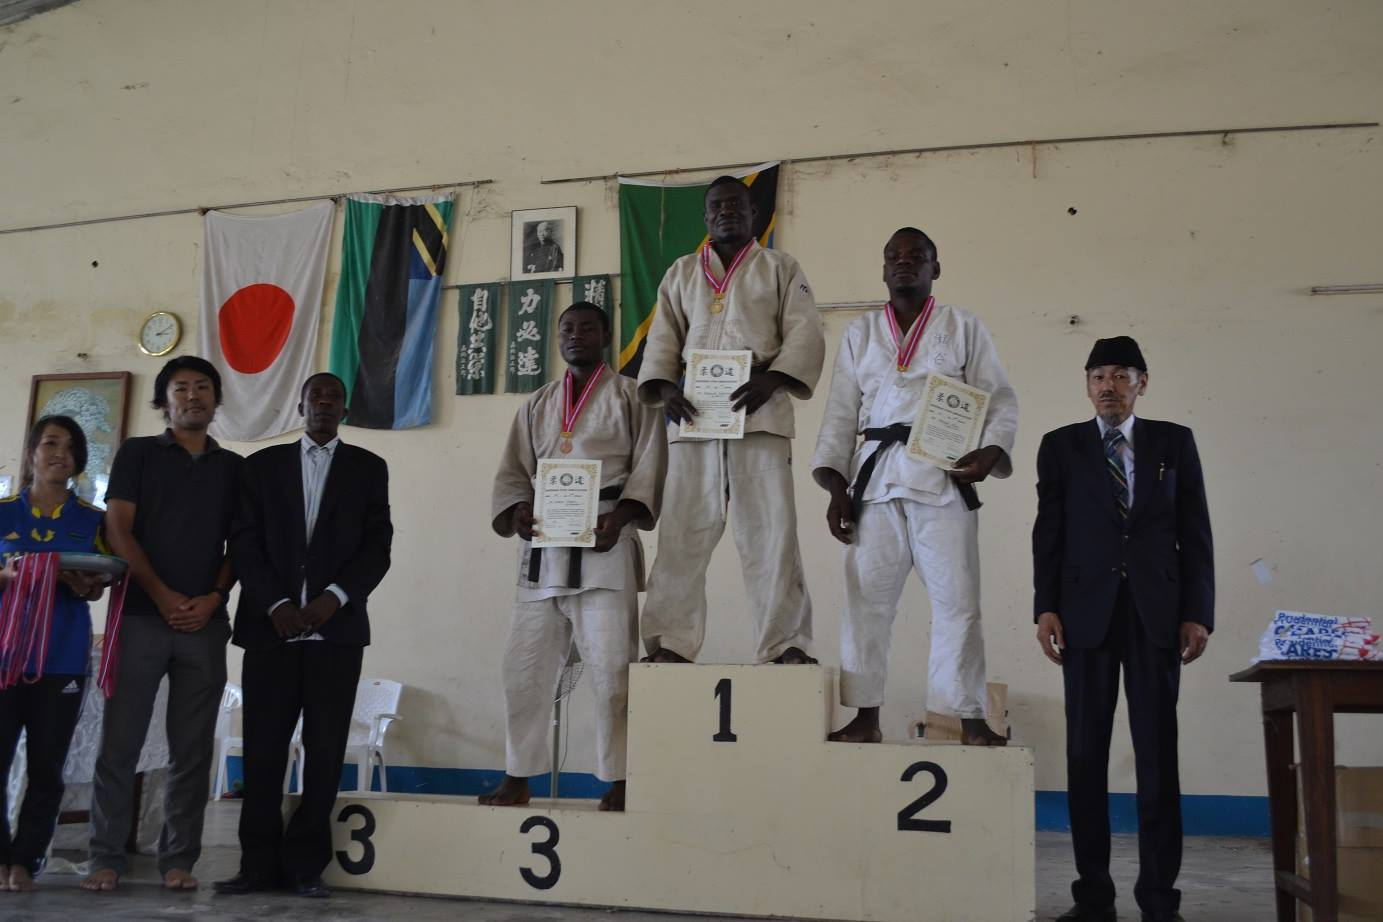 ZANZIBAR WEGHT CATEGORY JUDO CHAMPIONSHIP2018~ザンジバル柔道選手権大会2018_a0088841_10362540.jpg